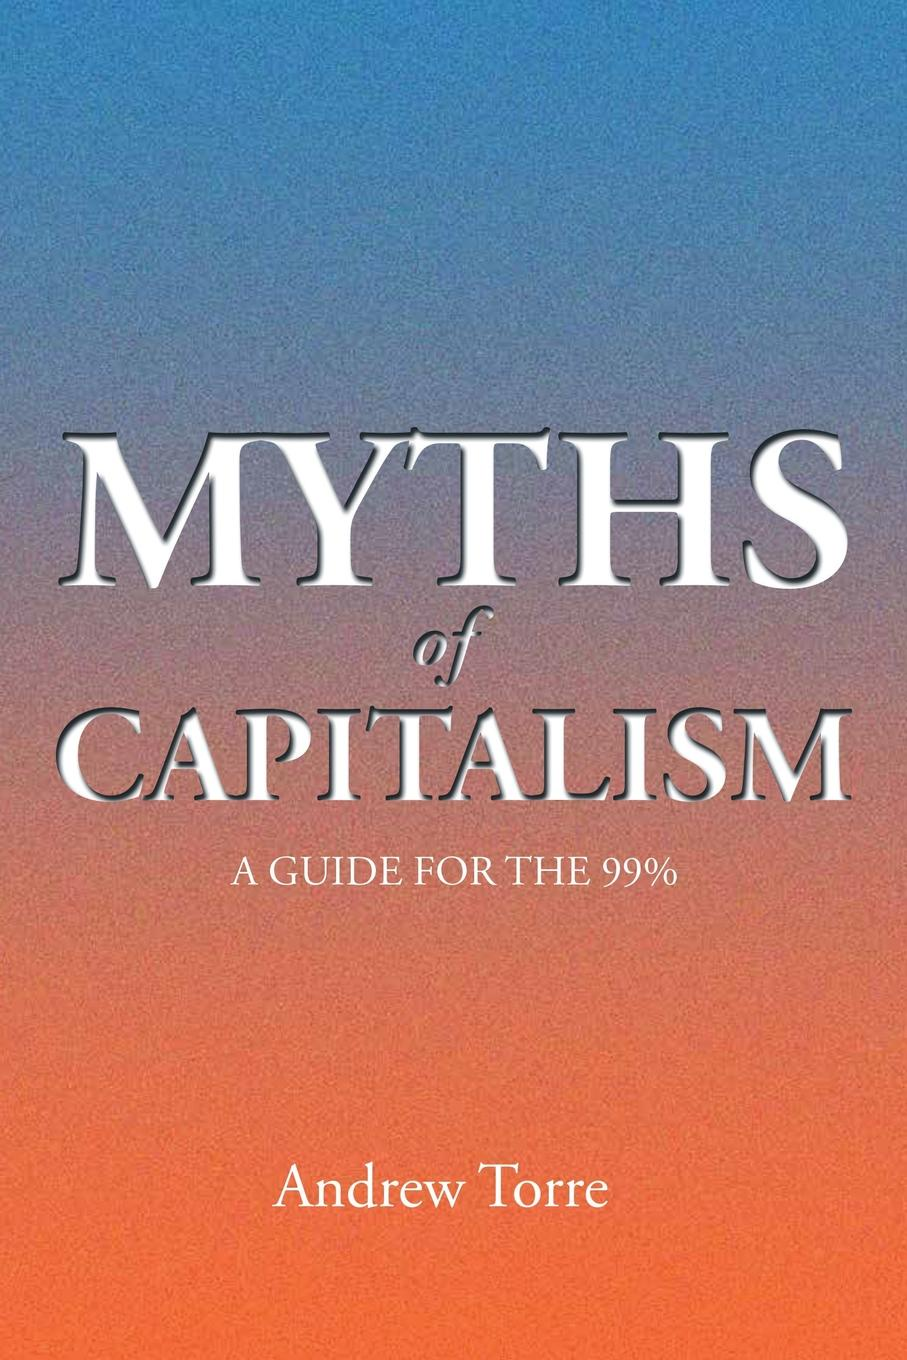 Andrew Torre Myths of Capitalism. A Guide for the 99% colin crouch making capitalism fit for society